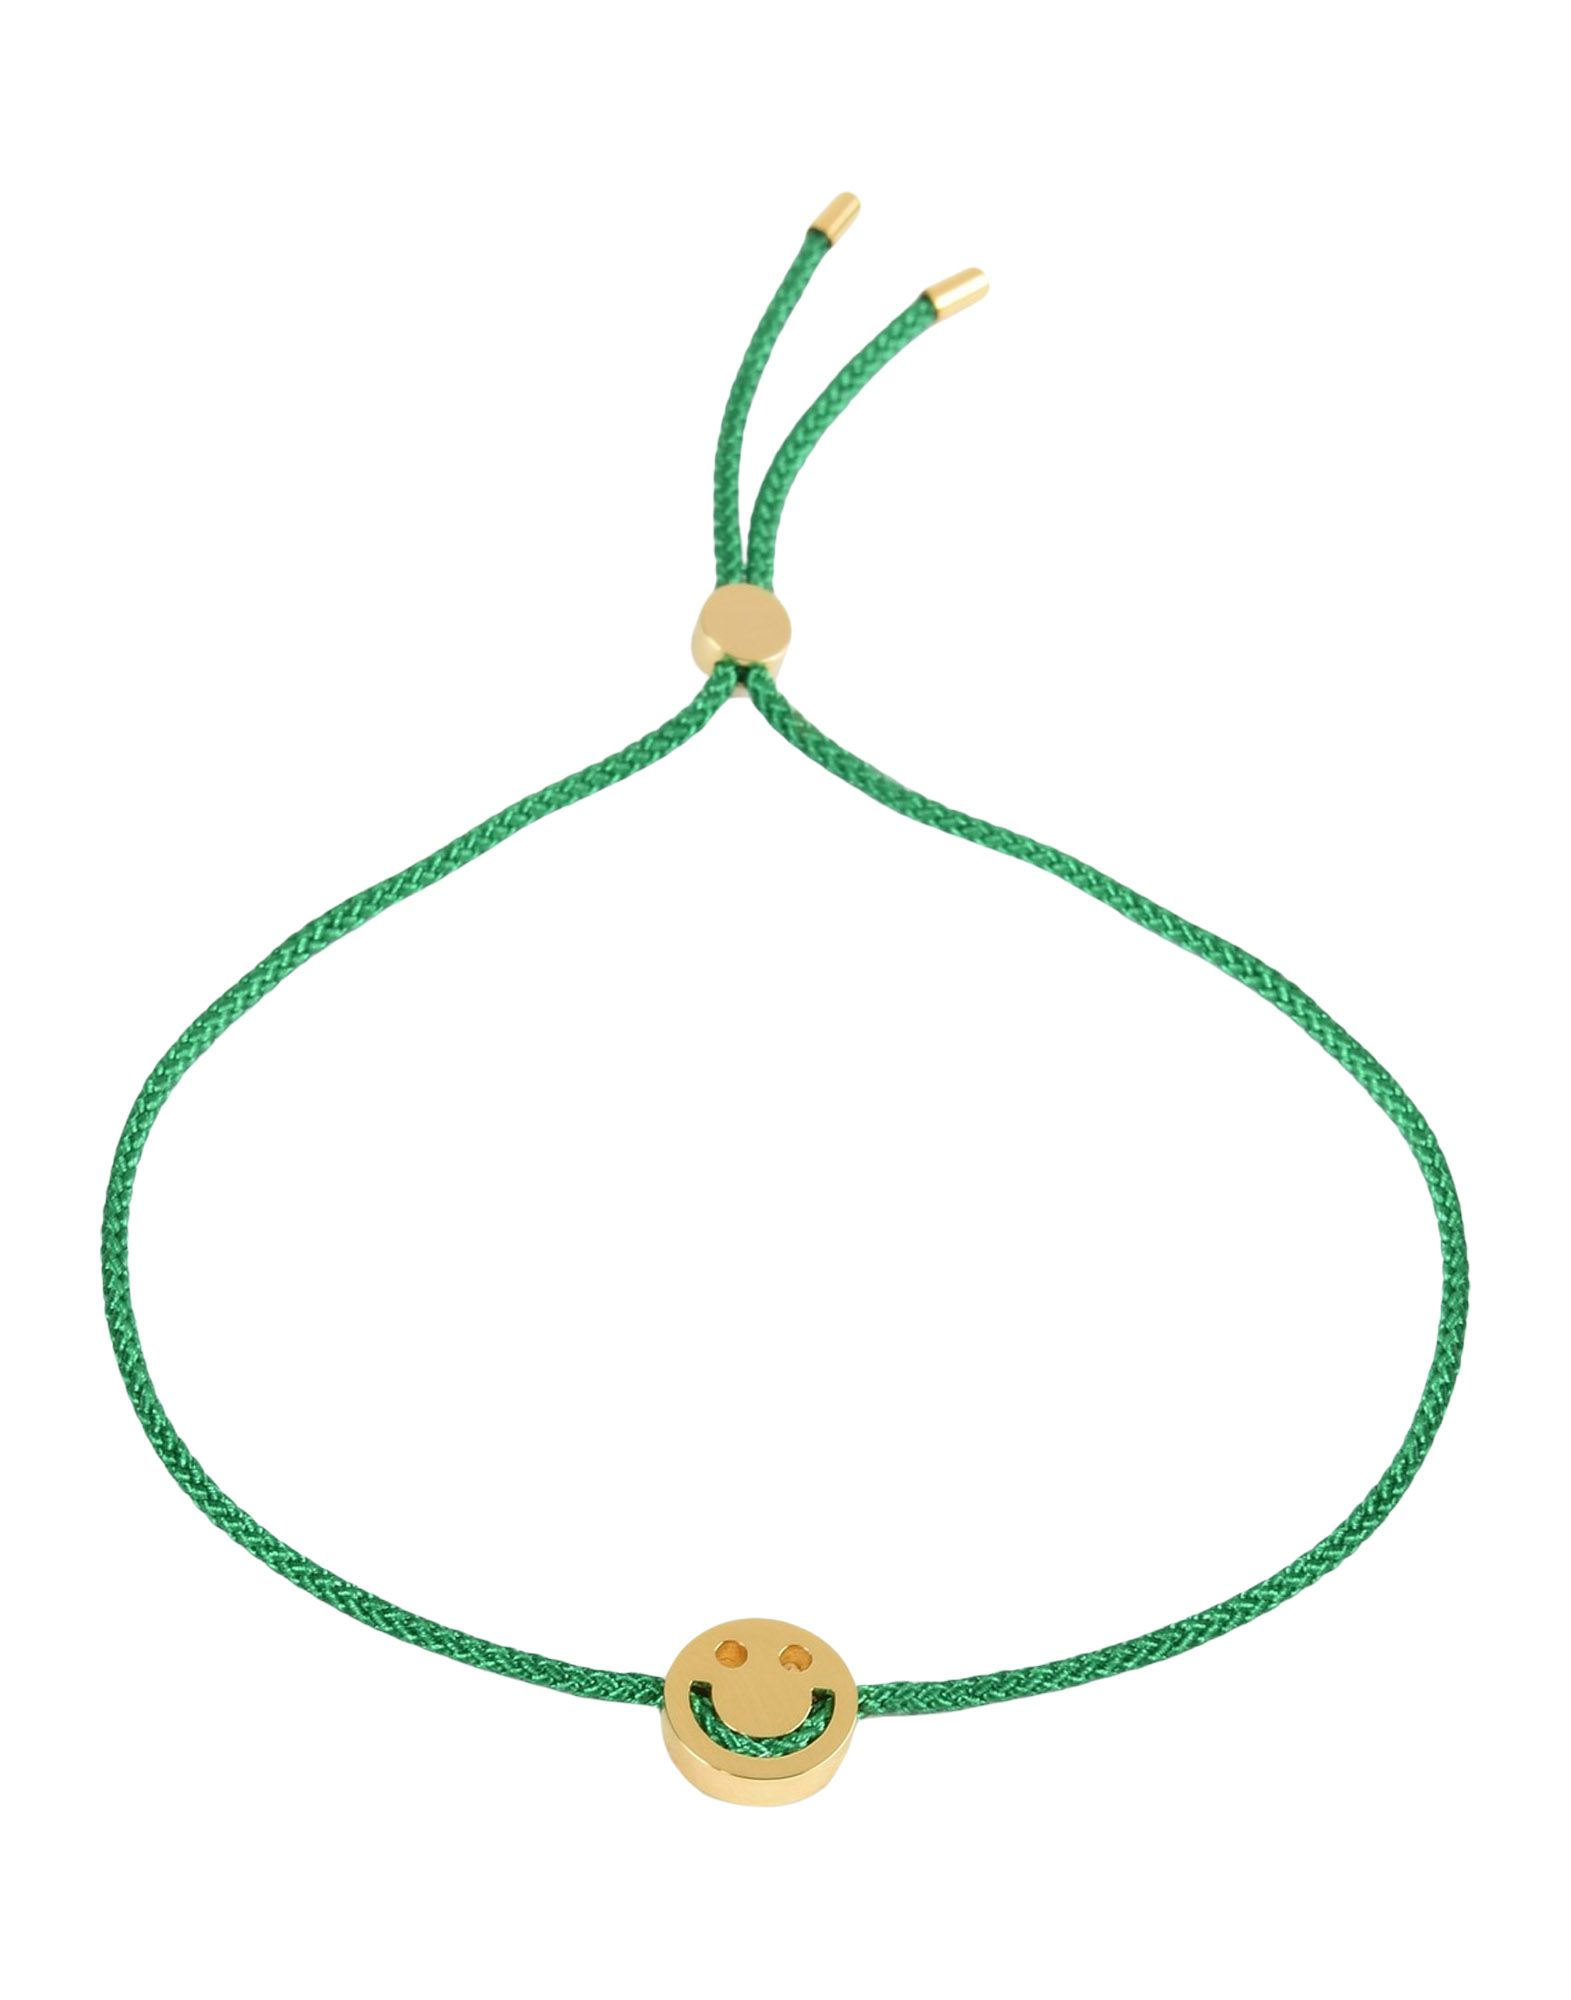 Bracciale Ruifier Friends Happy Bracelet_Green - Uomo - Acquista online su